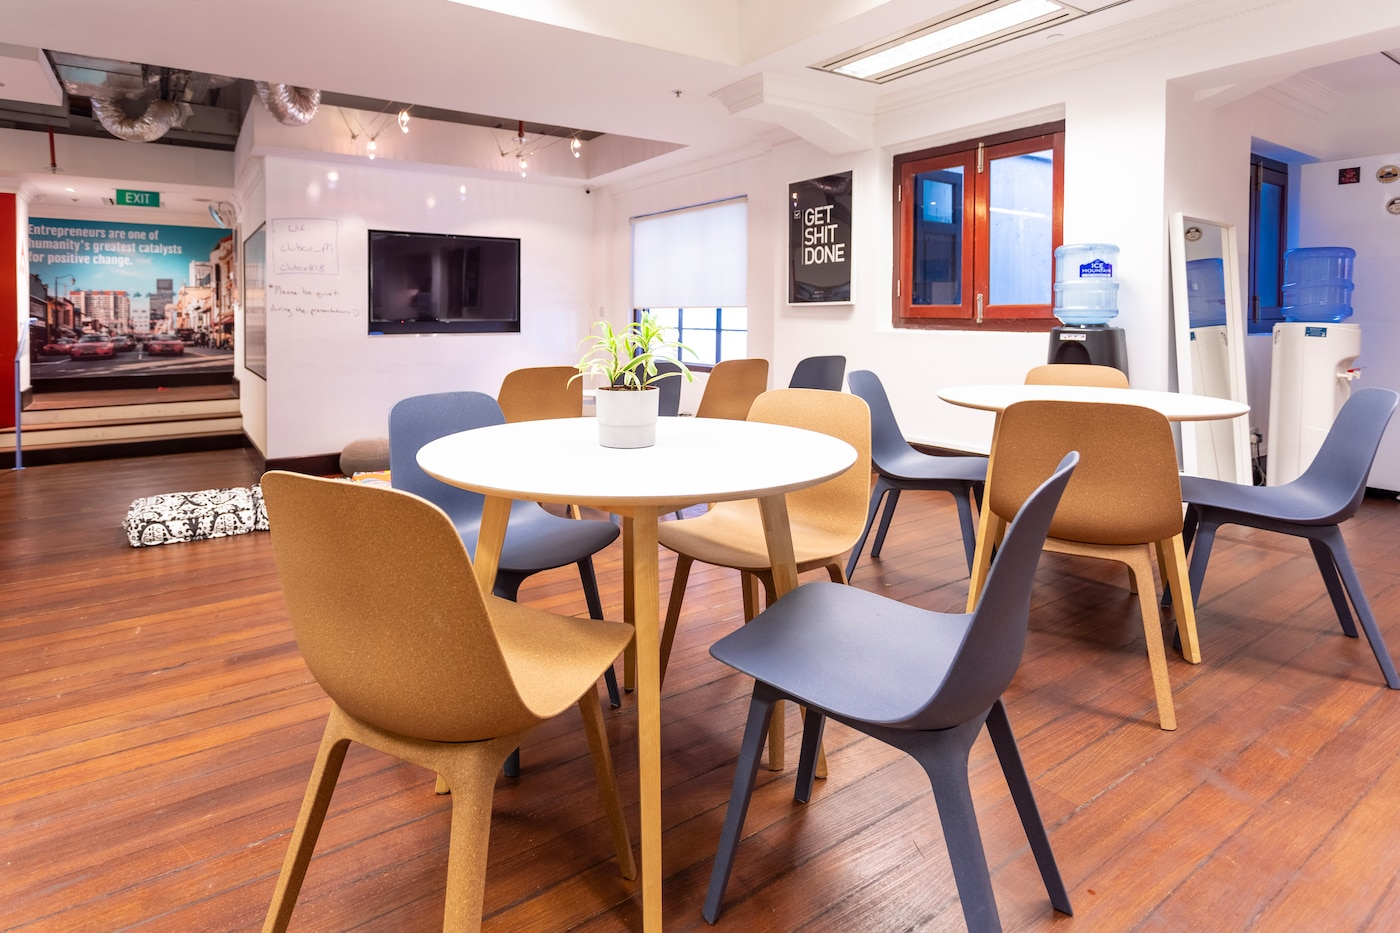 IKEA Home Furnishings takes on ClubCo Lifestyle Co-Working.